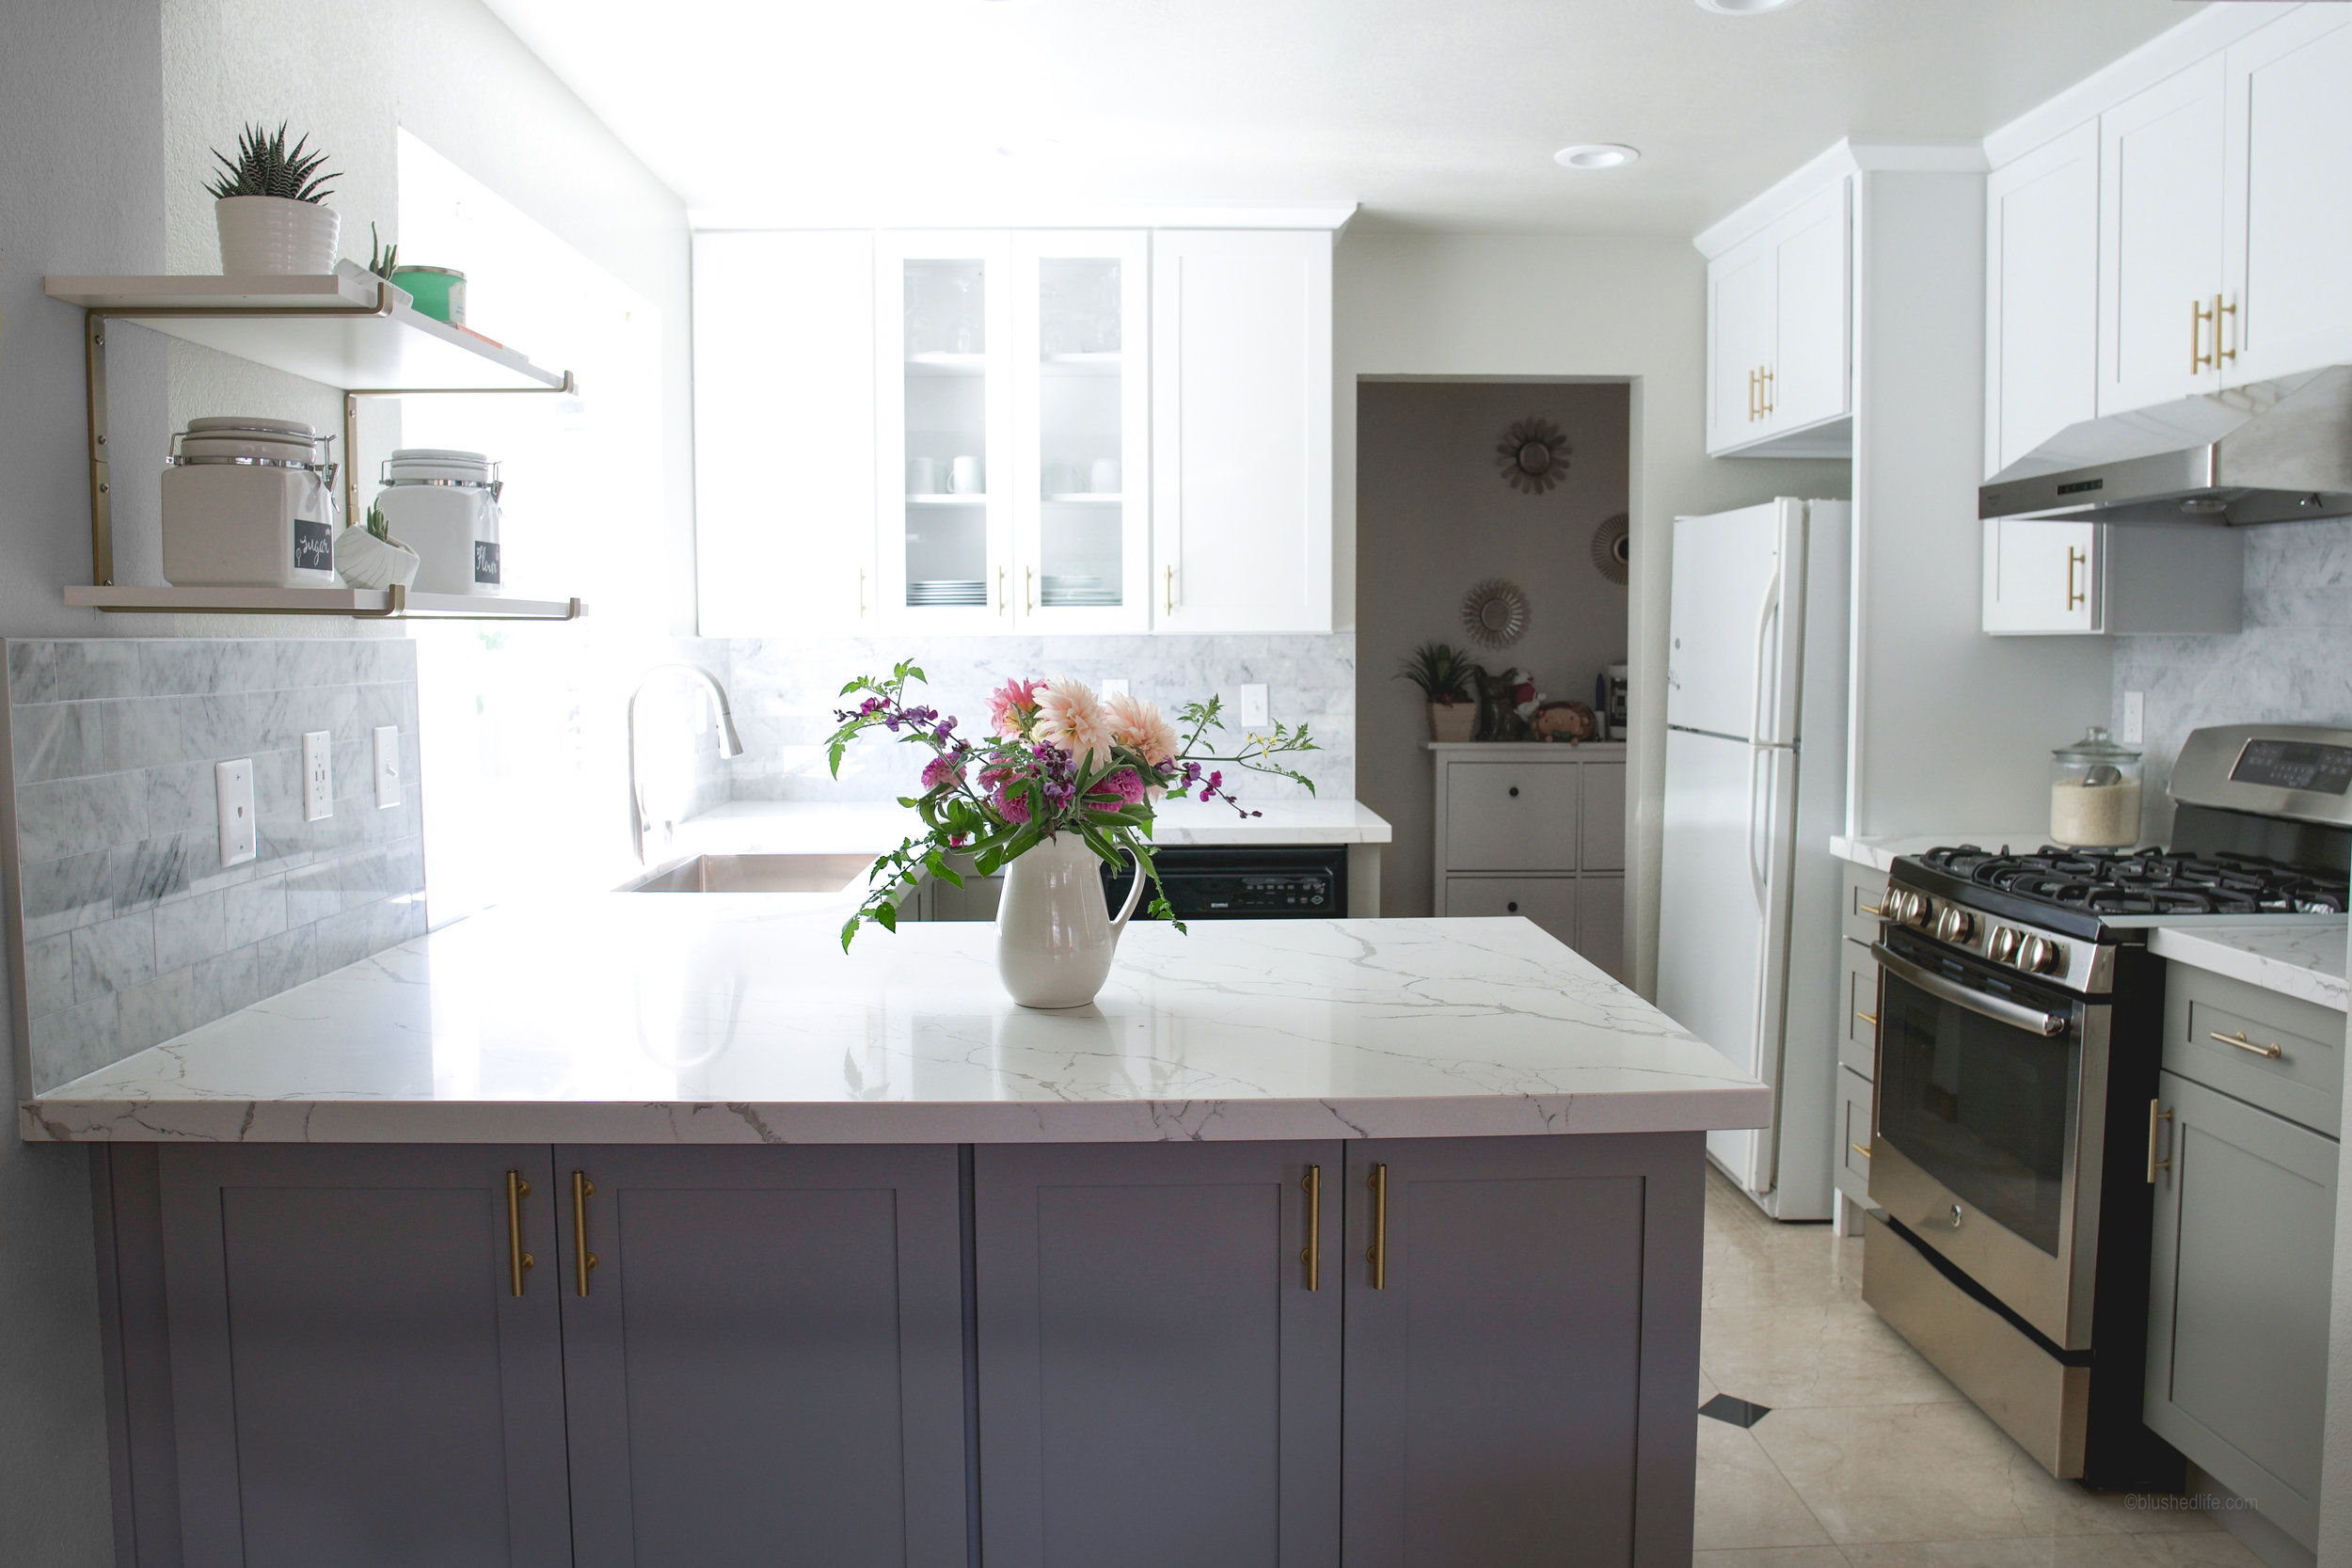 Small Kitchen Makeover After_DSC09998-2.jpg